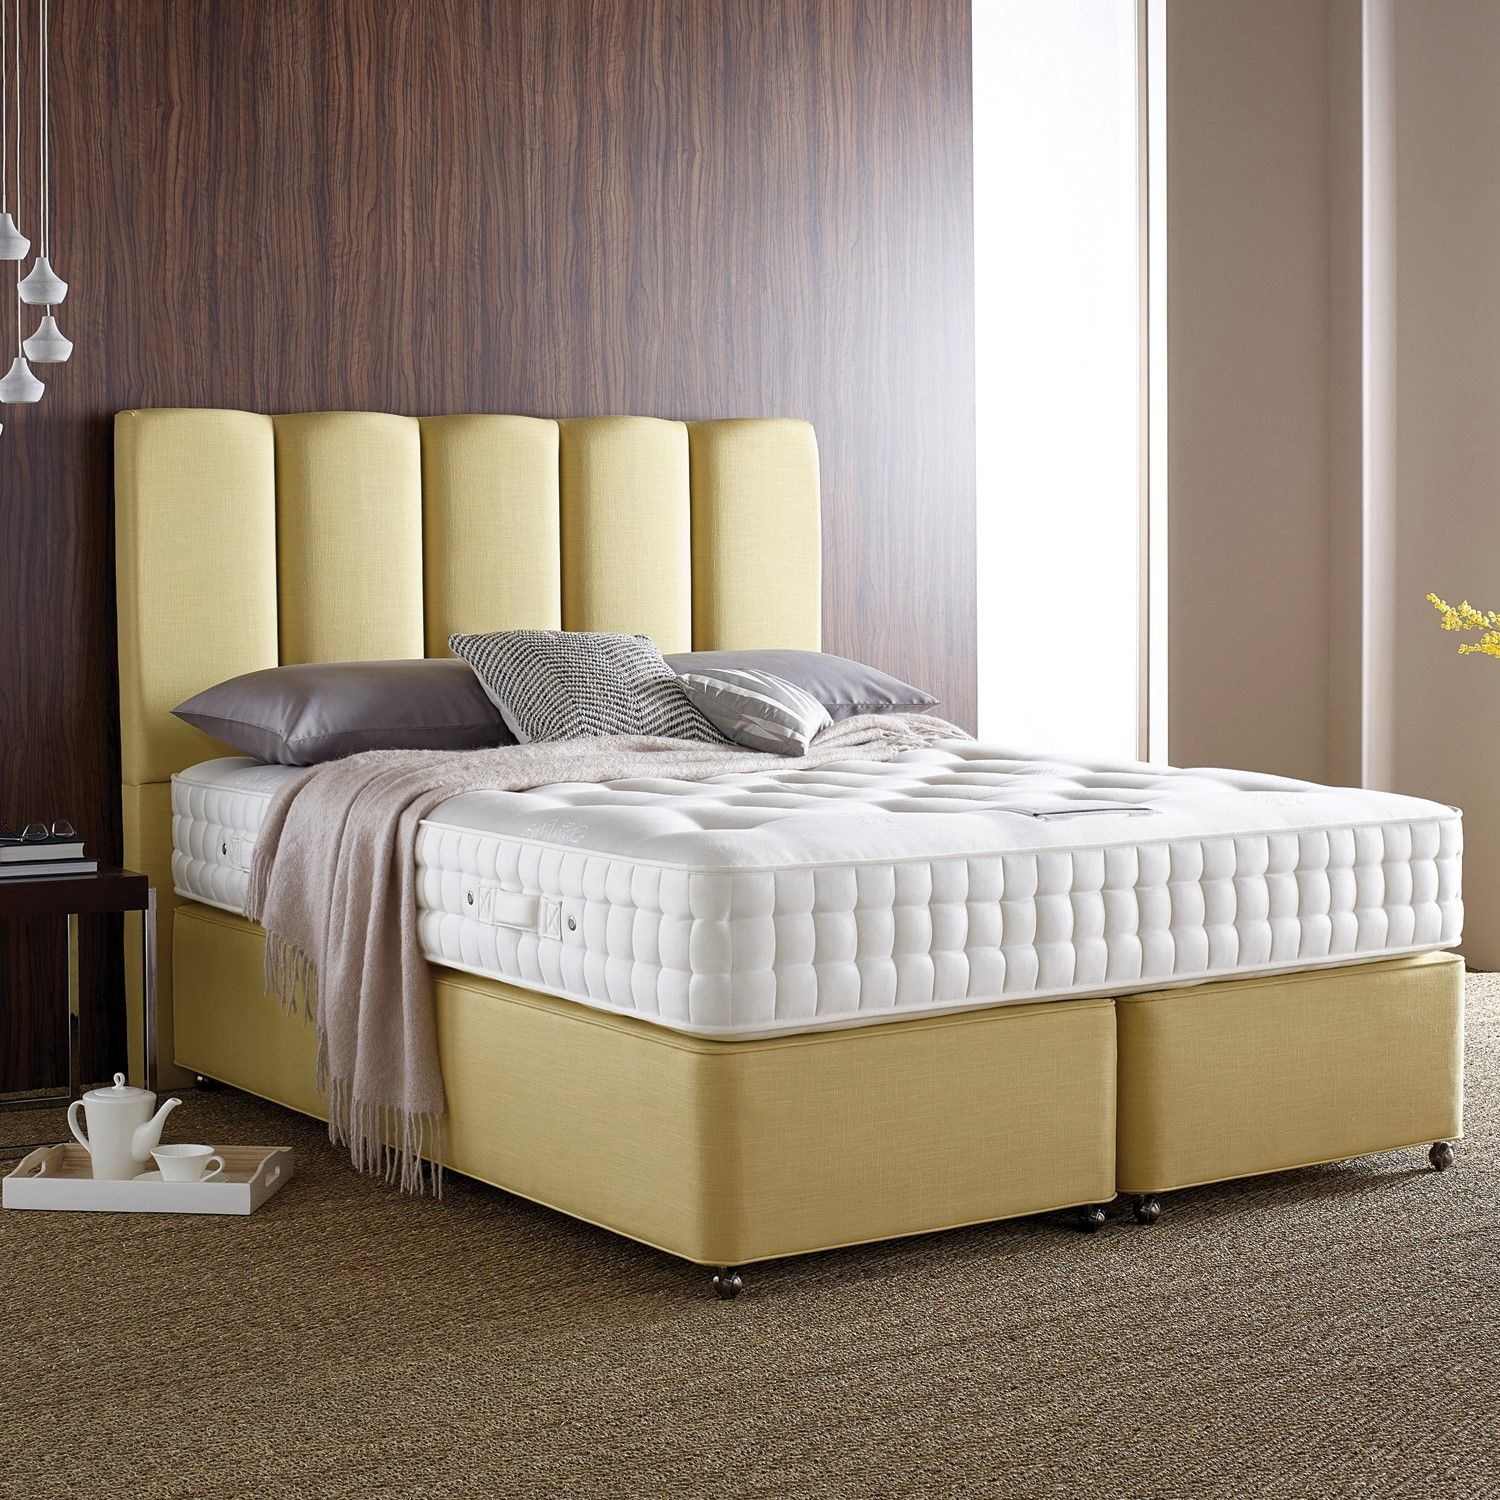 Somnus Nidderdale Bedframe And Mattress Luxury Natural And